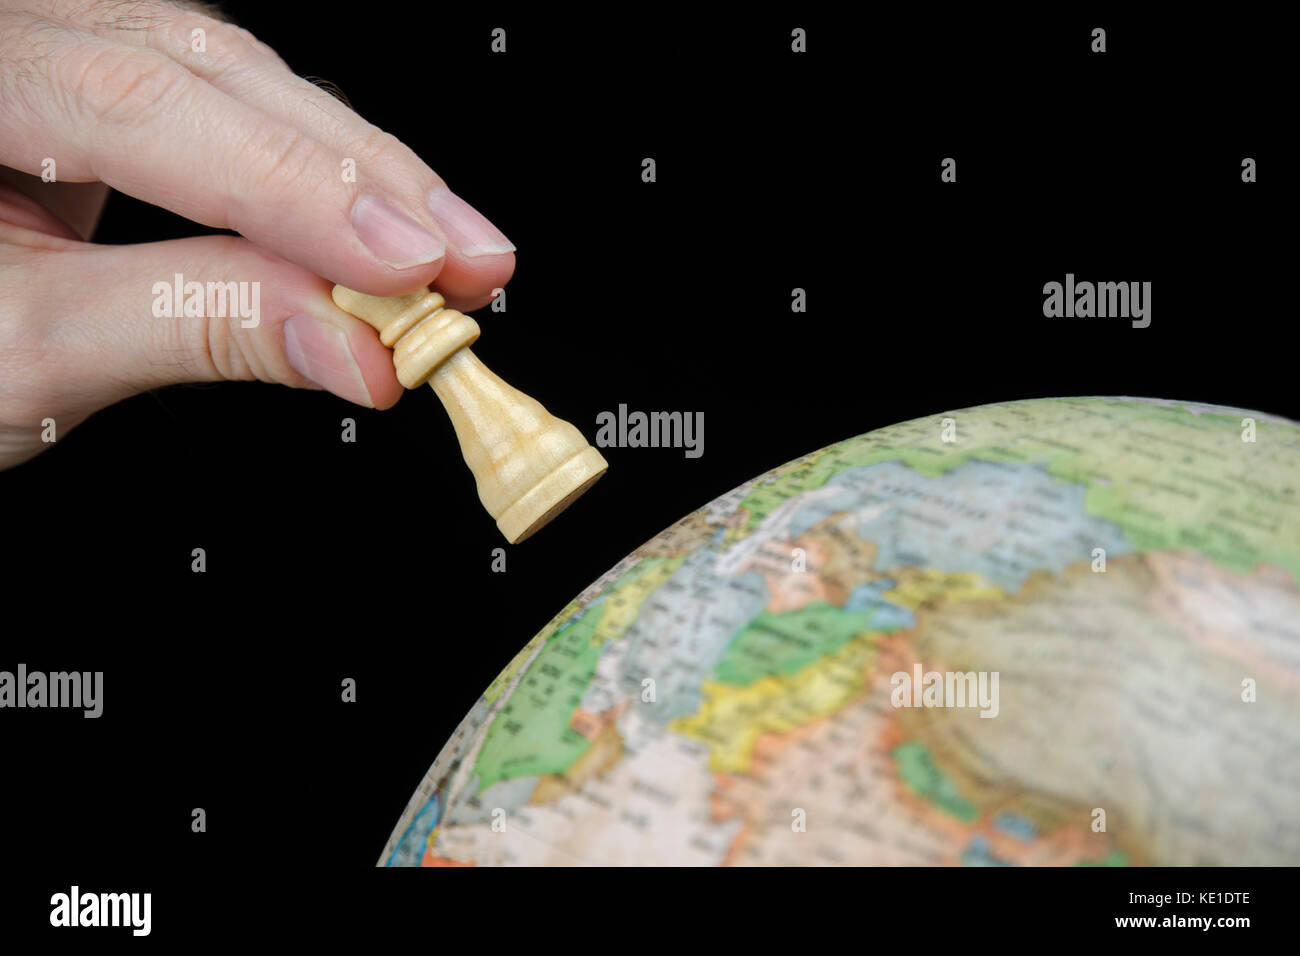 Close-up view of a hand holding a chess piece over a globe isolated on a black background - Stock Image